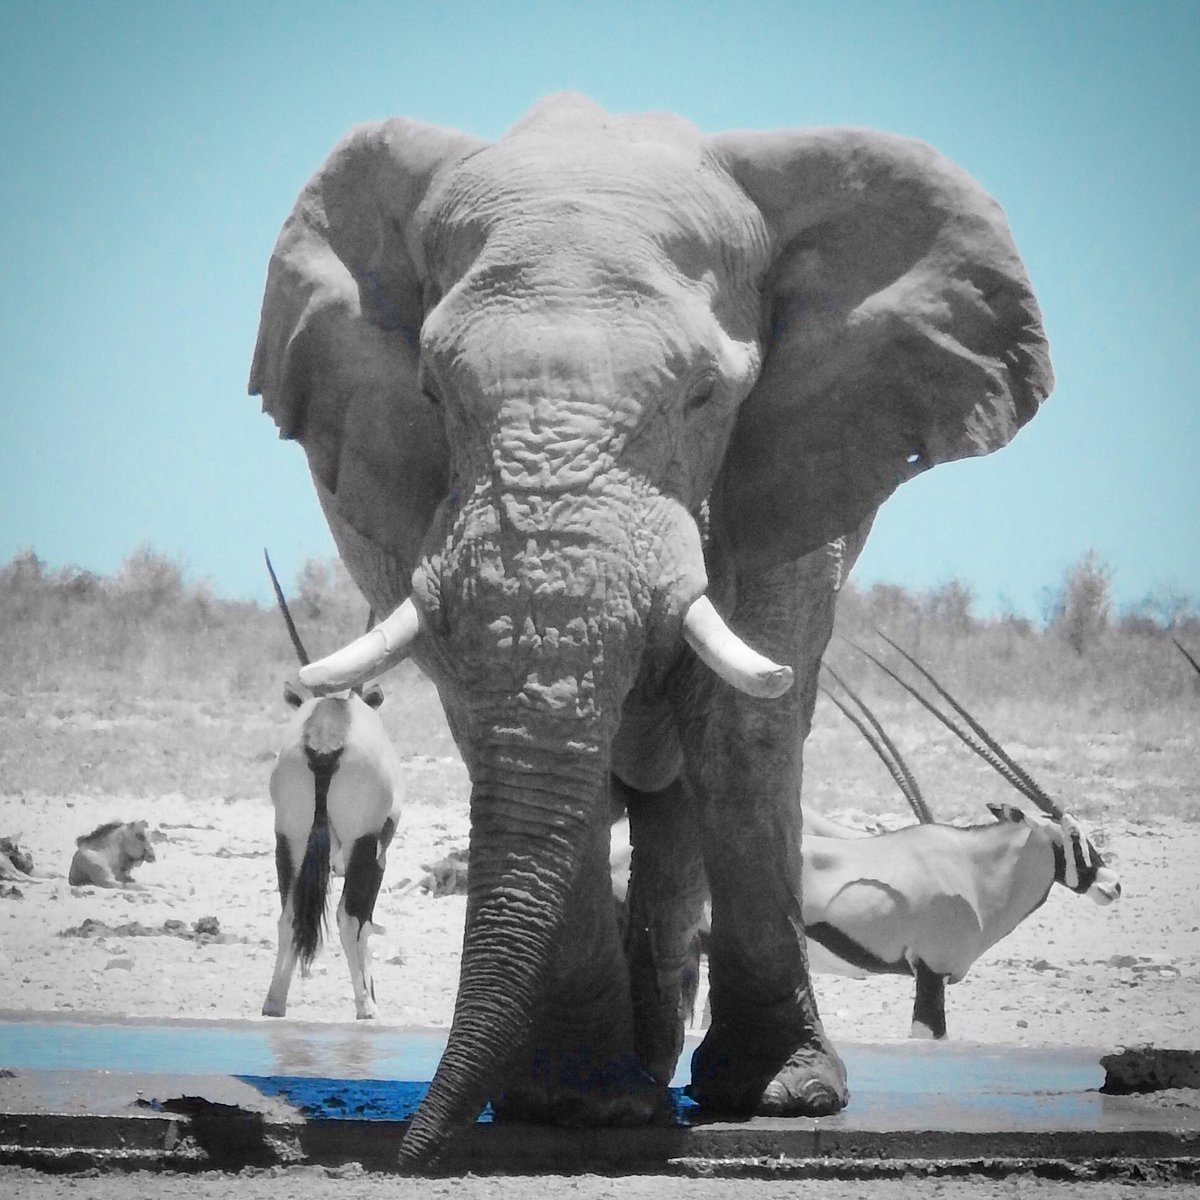 RT @GeorgPapp: Respect & protect these majestic creatures (Etosha NP, Namibia) 🐘#WorldElephantDay #Travel https://t.co/nOt6gSGy5w